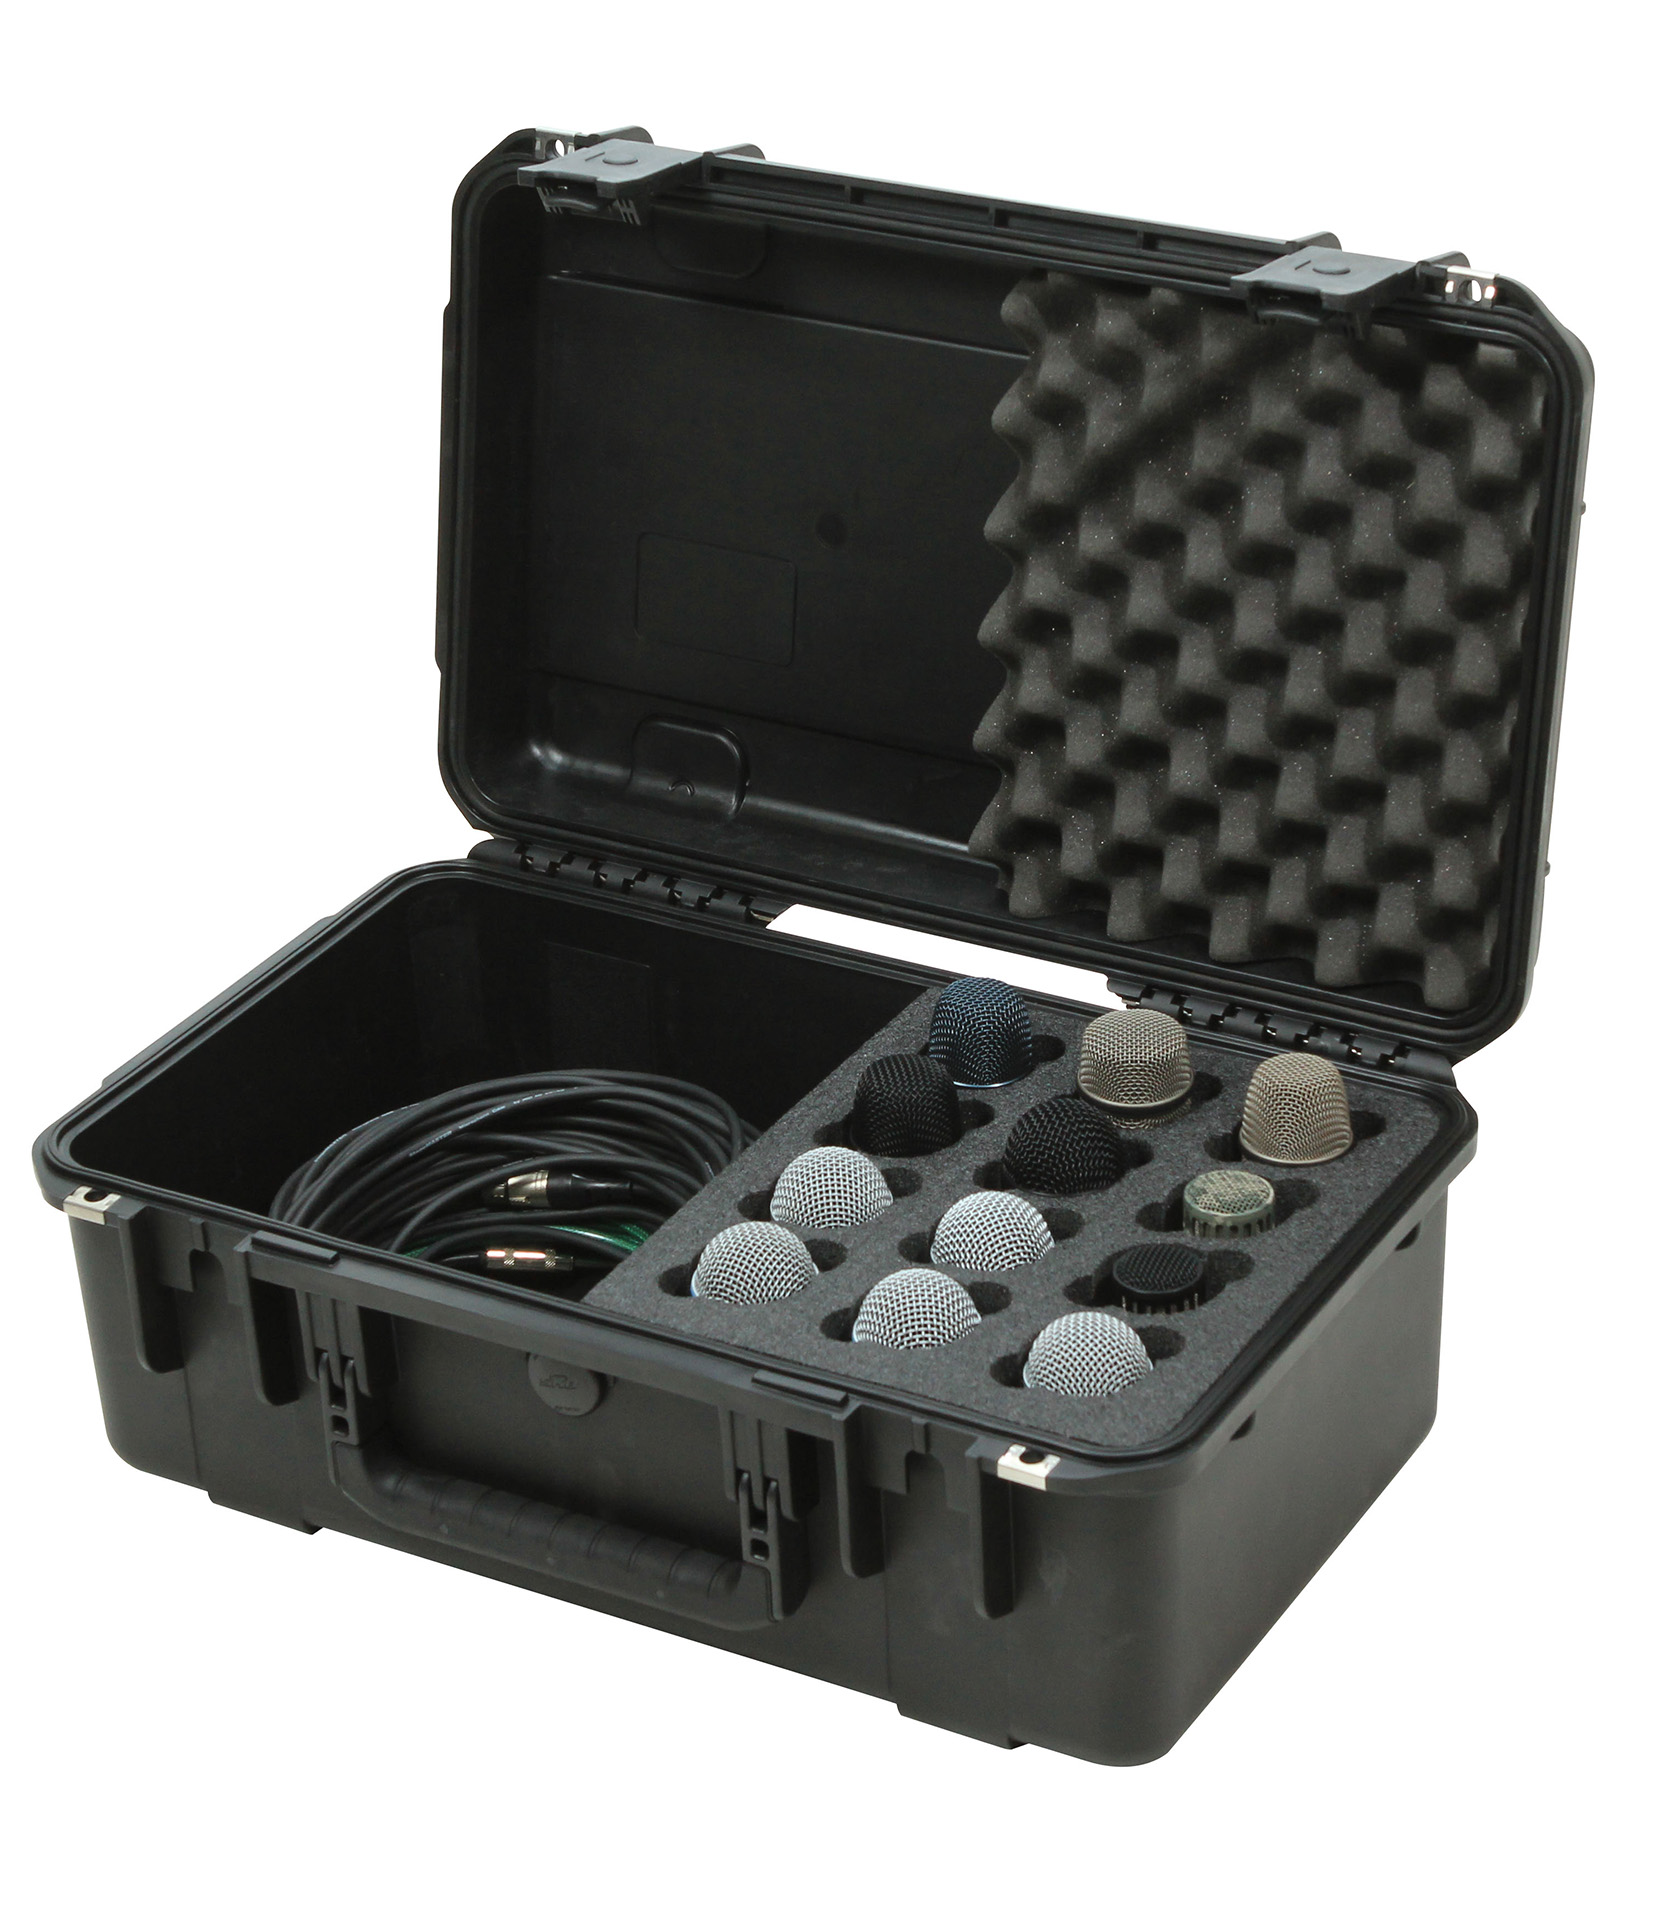 Melody House Musical Instruments Store - 3I 2011 MC12 iSeries Injection Molded case w foam